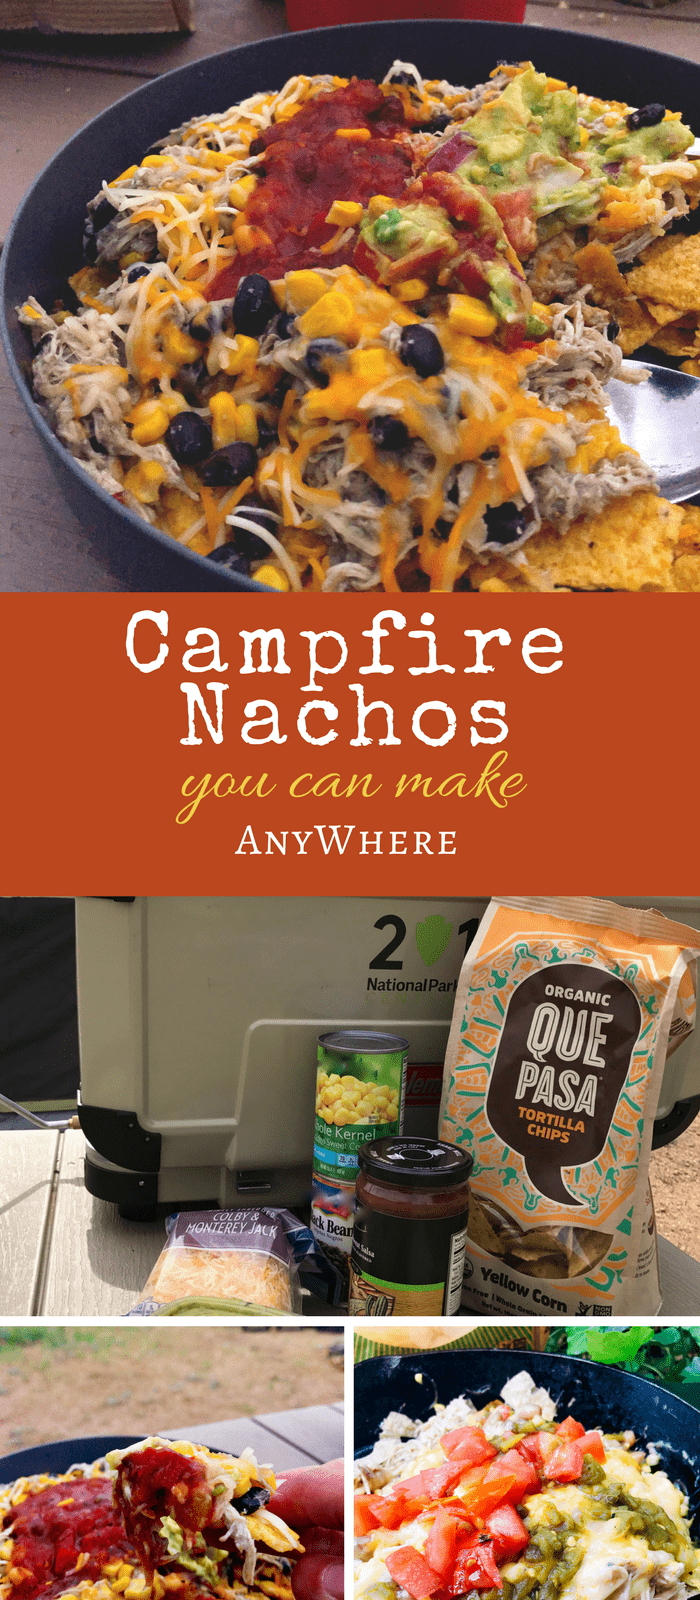 Make Anywhere Campfire Nachos - This camping recipe features delicious green Chile chicken